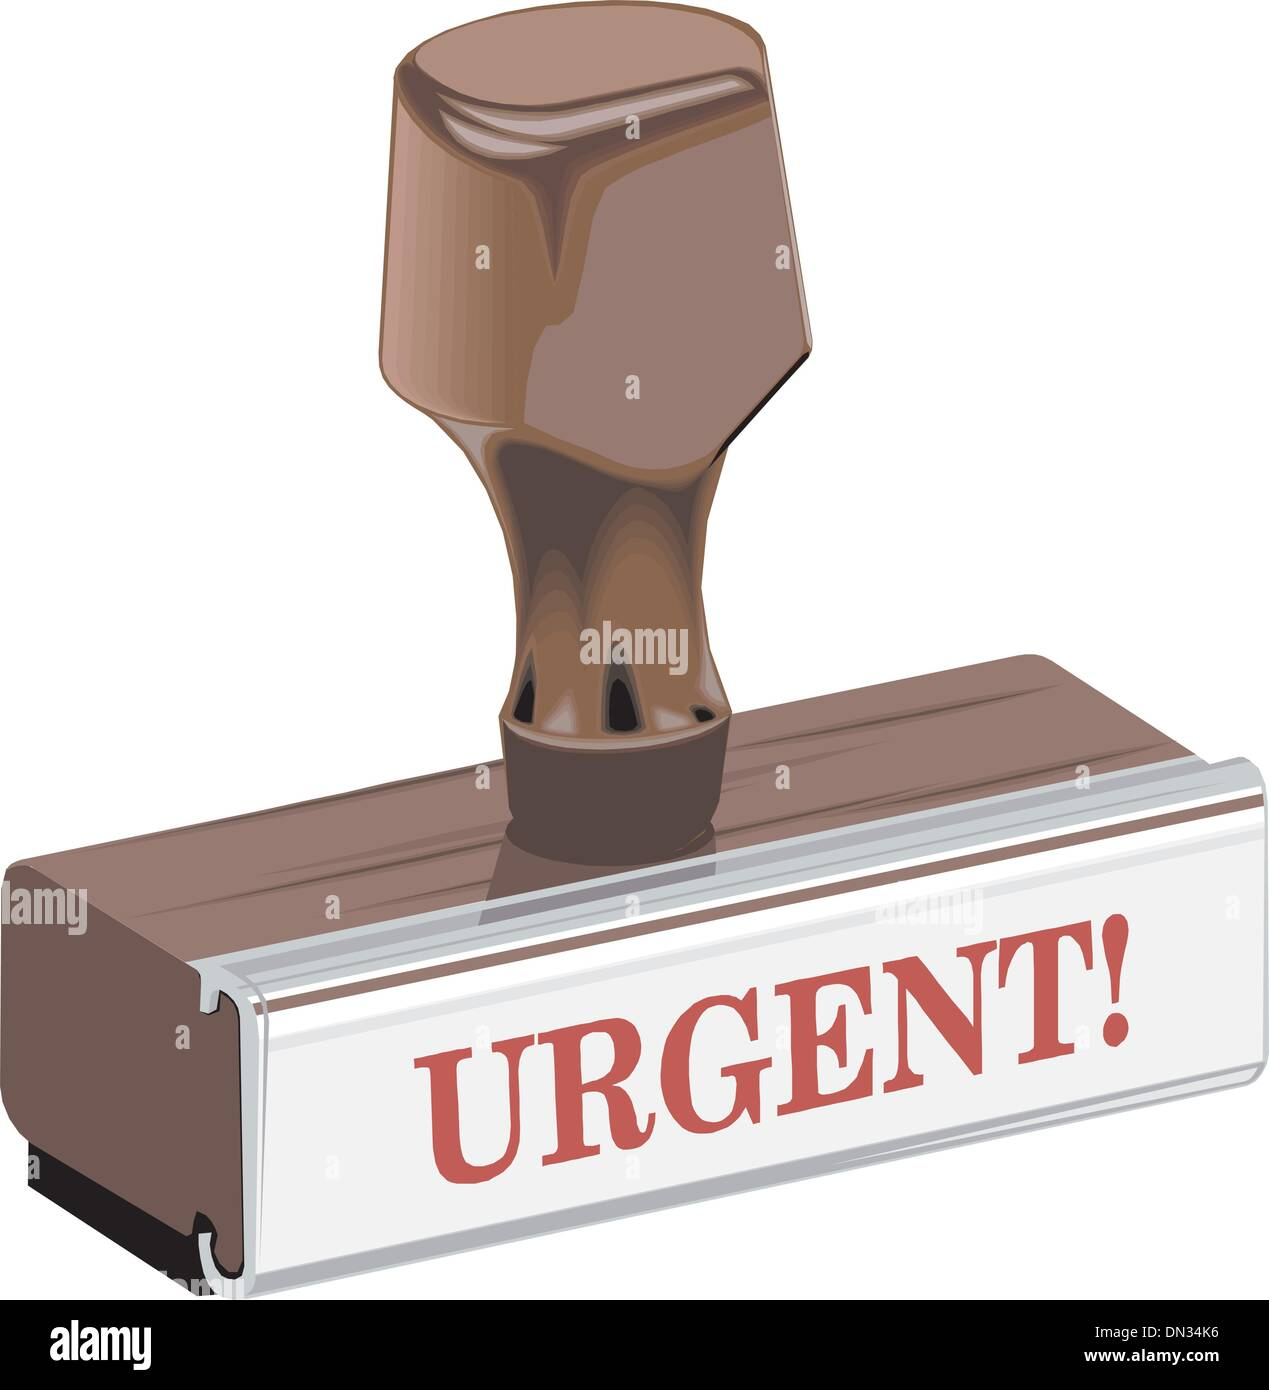 Stamp urgent - Stock Image